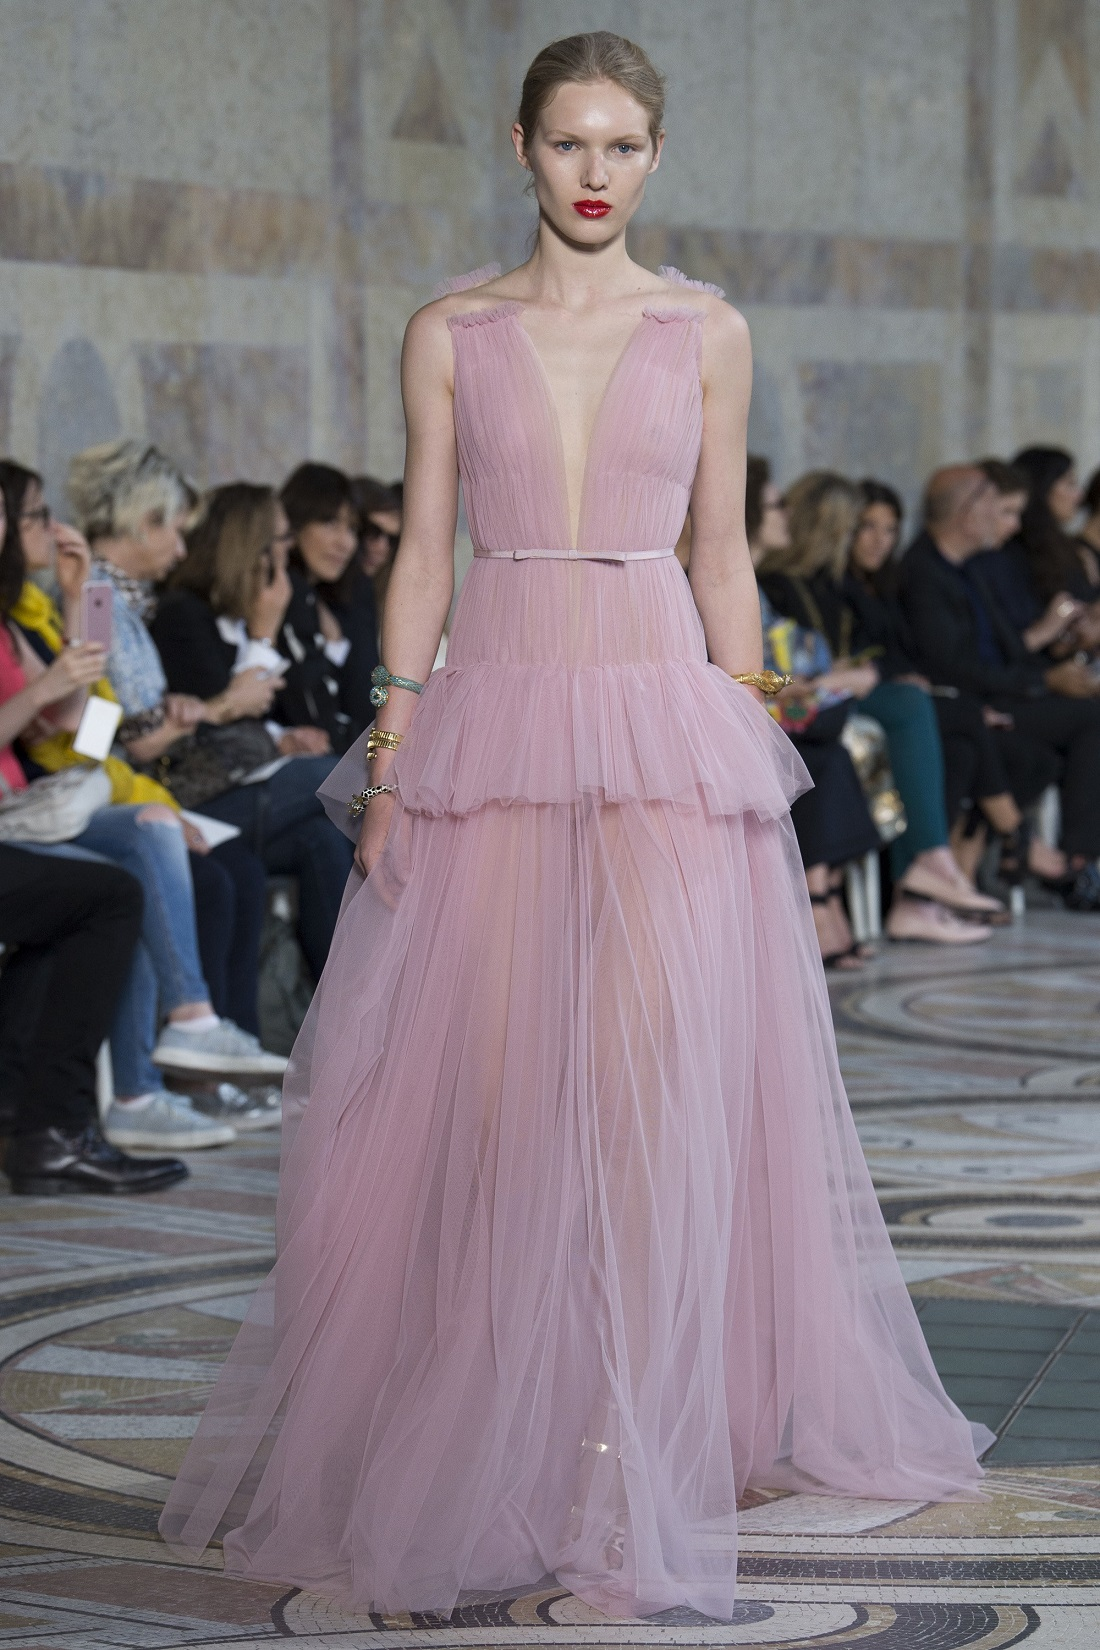 @projectfairytale: Giambattista Valli Couture Fall 2017